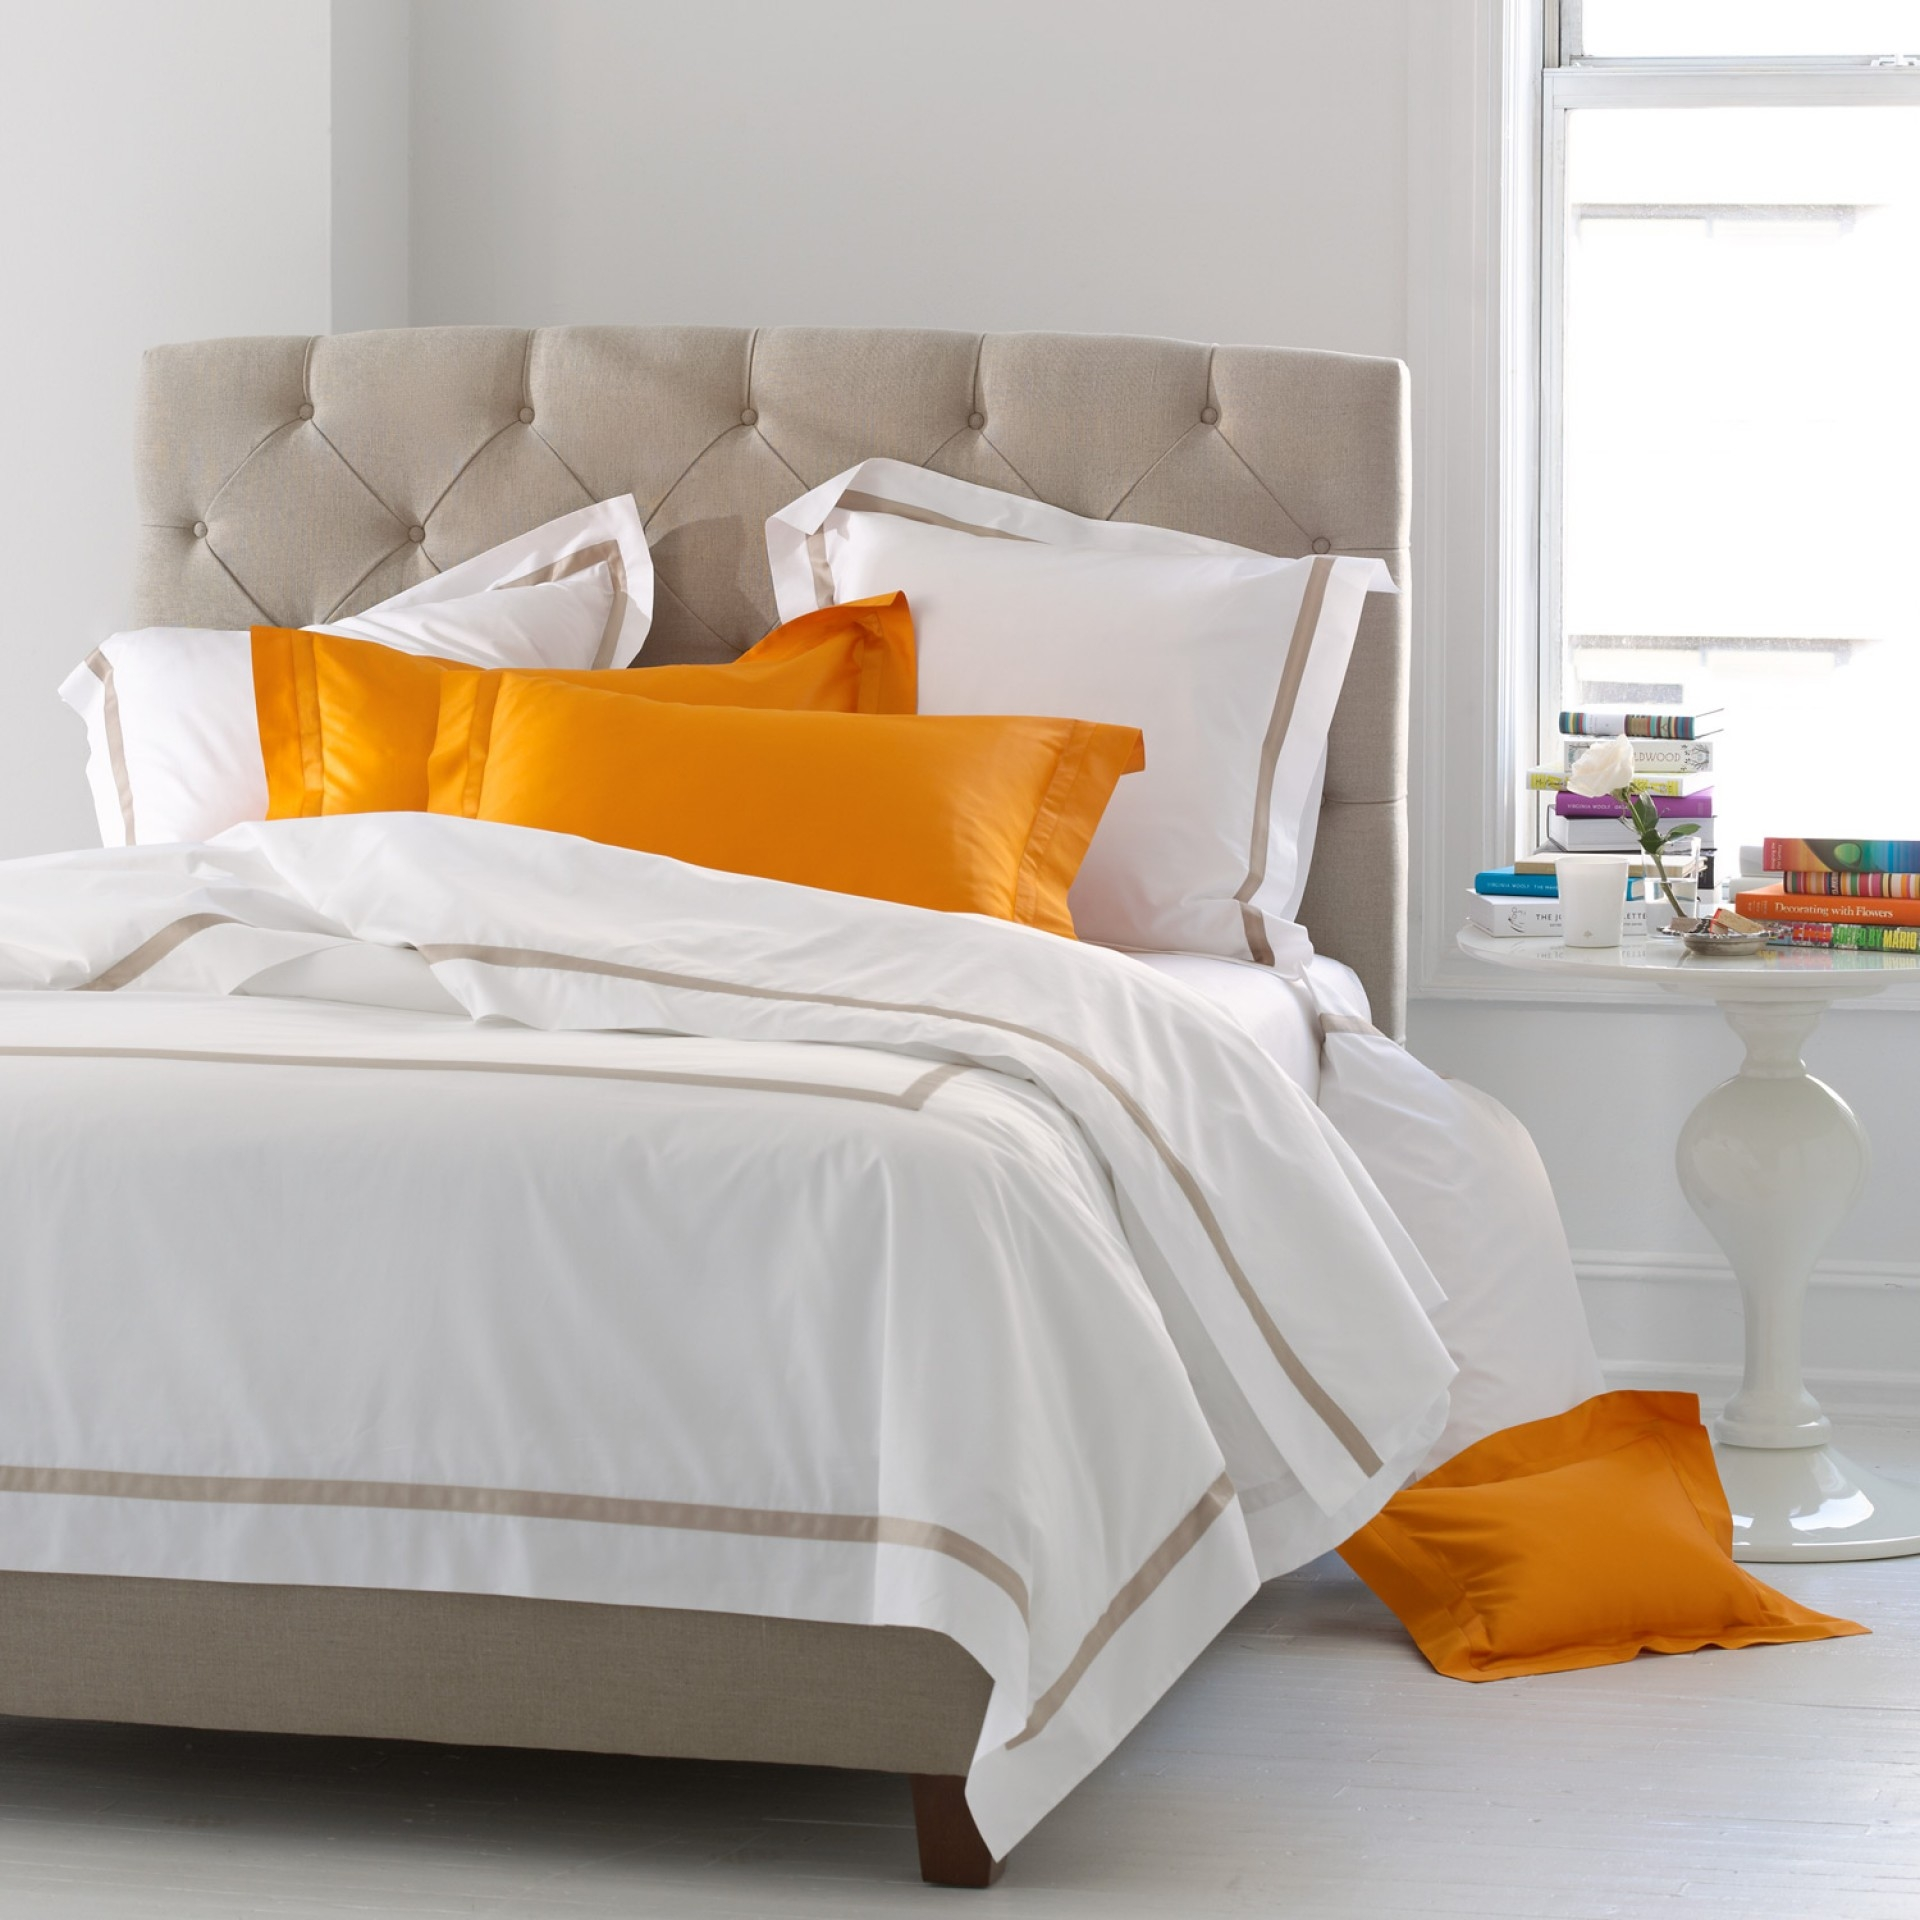 Captivating matouk sheets with pillows for bedroom with matouk sheets sale